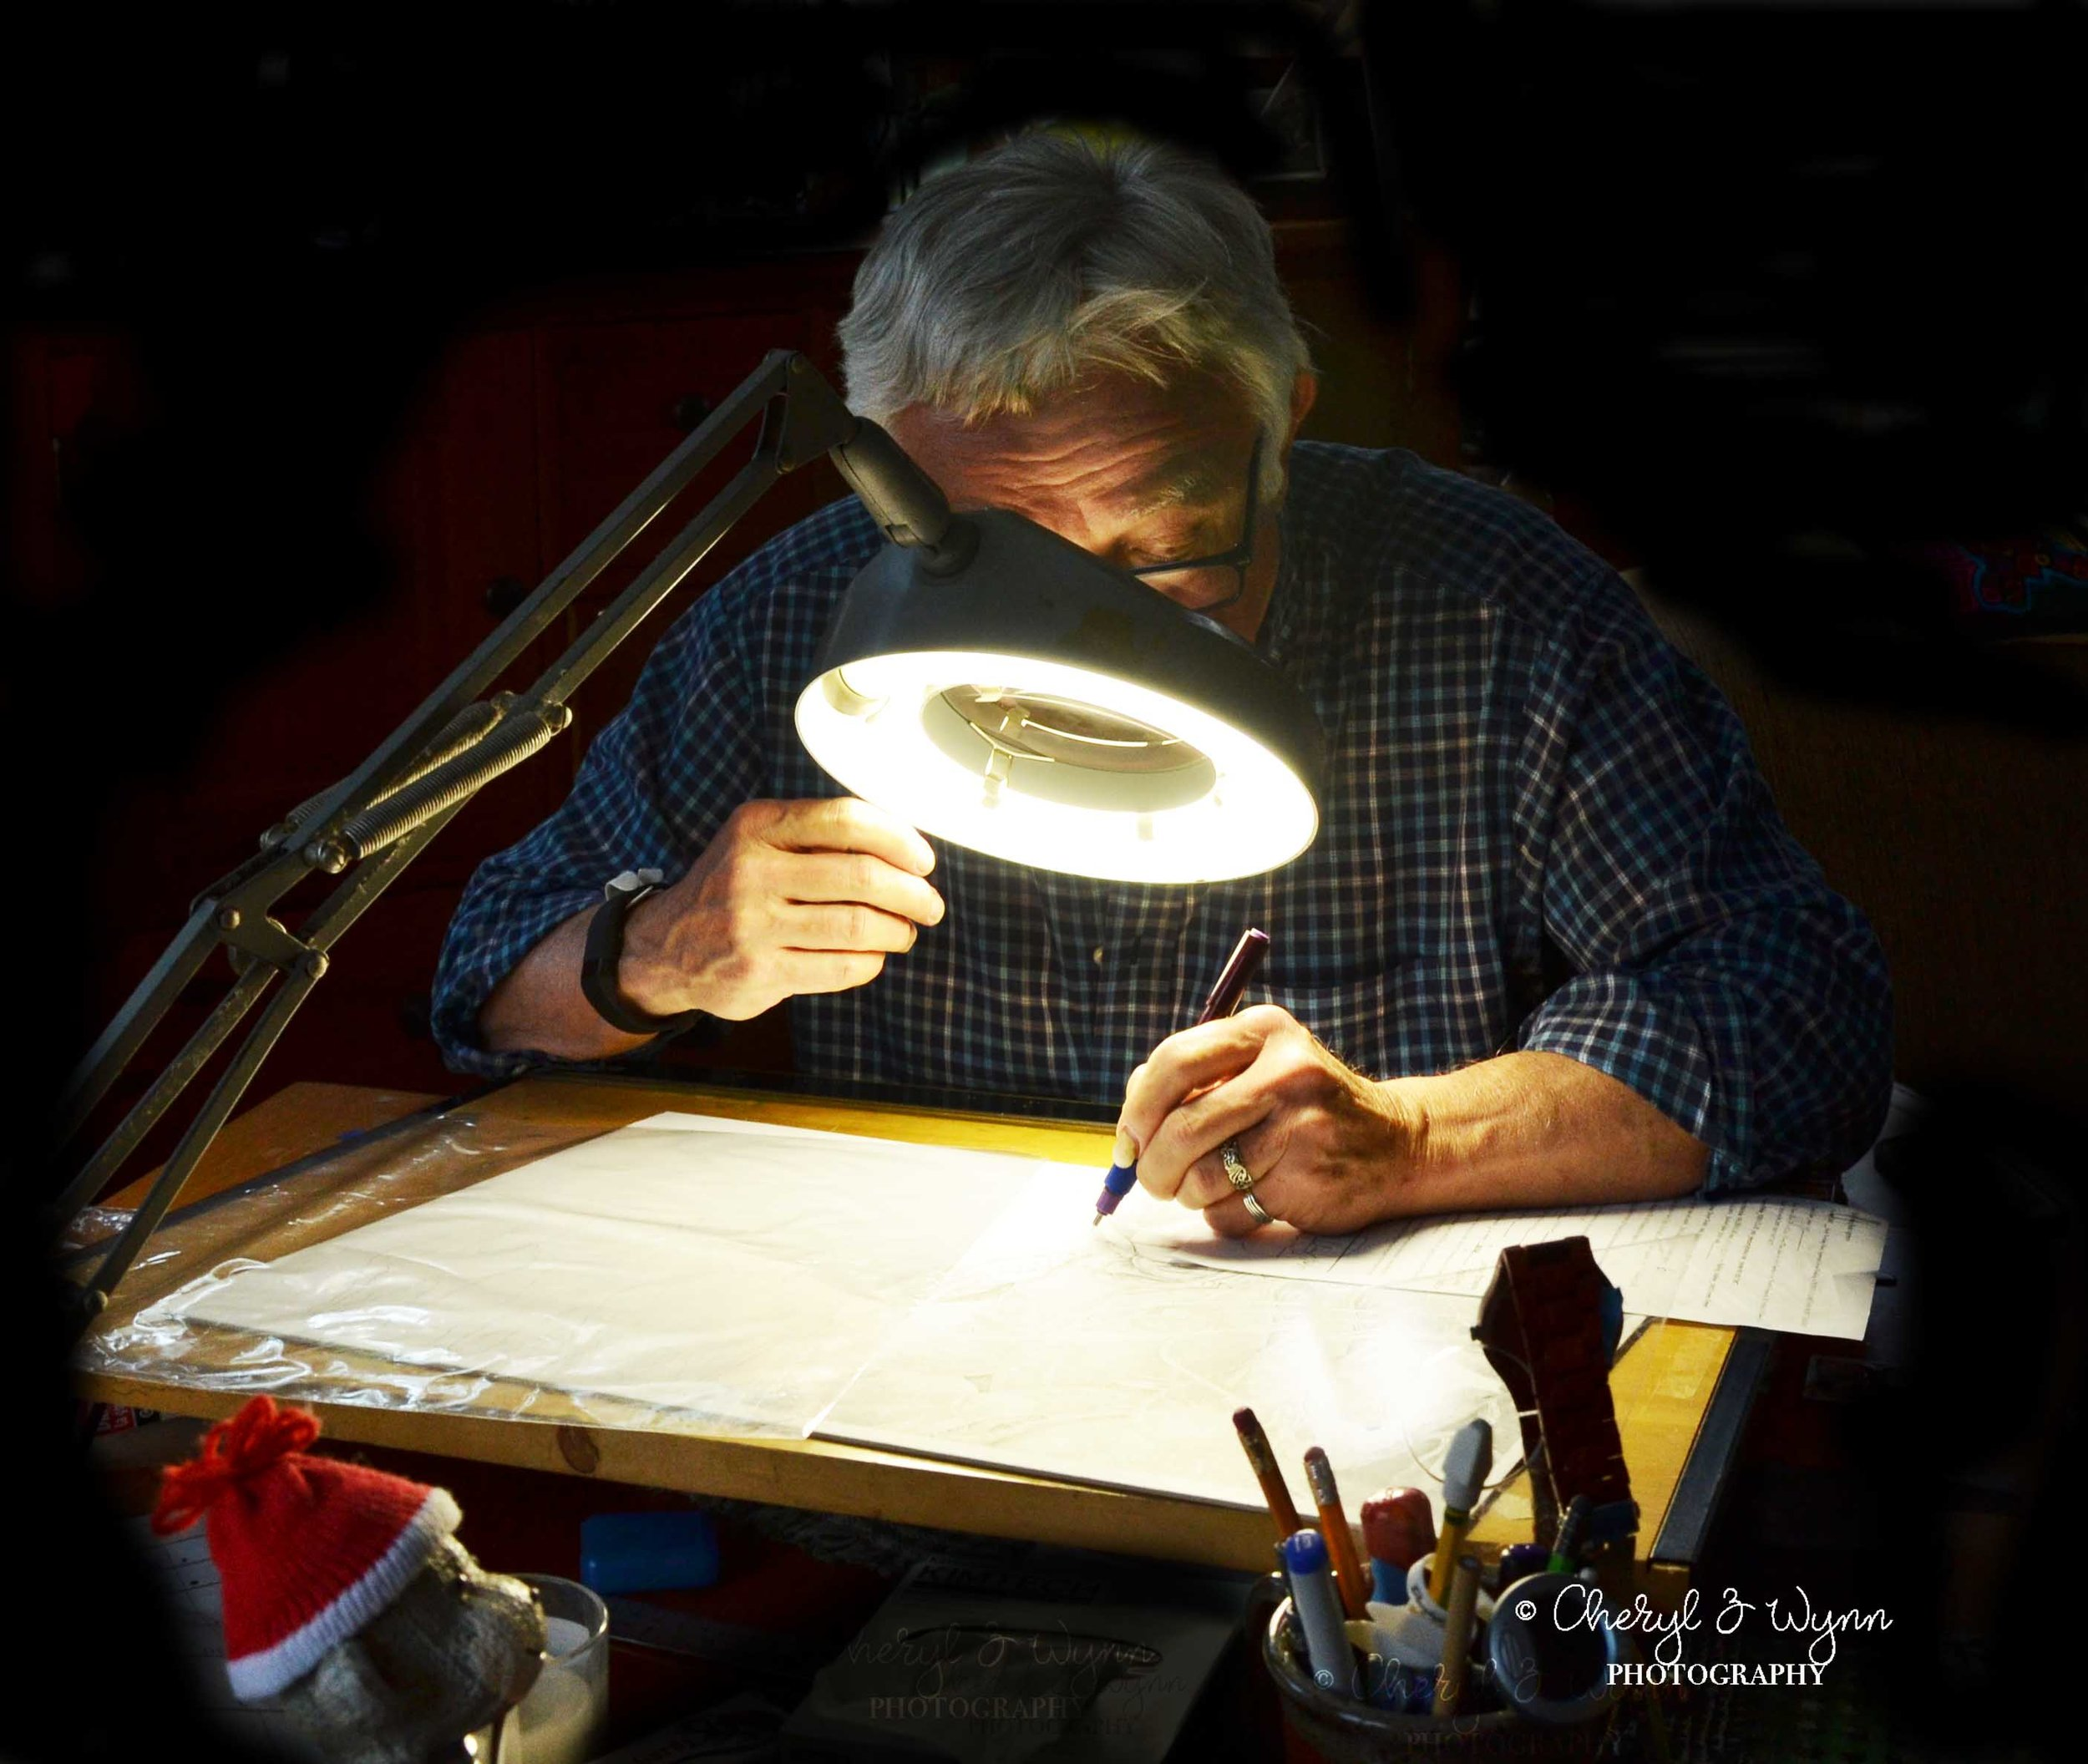 Henry at work at his drawing table ~ creating master pieces using a technical fountain pen, a magnifying glass.